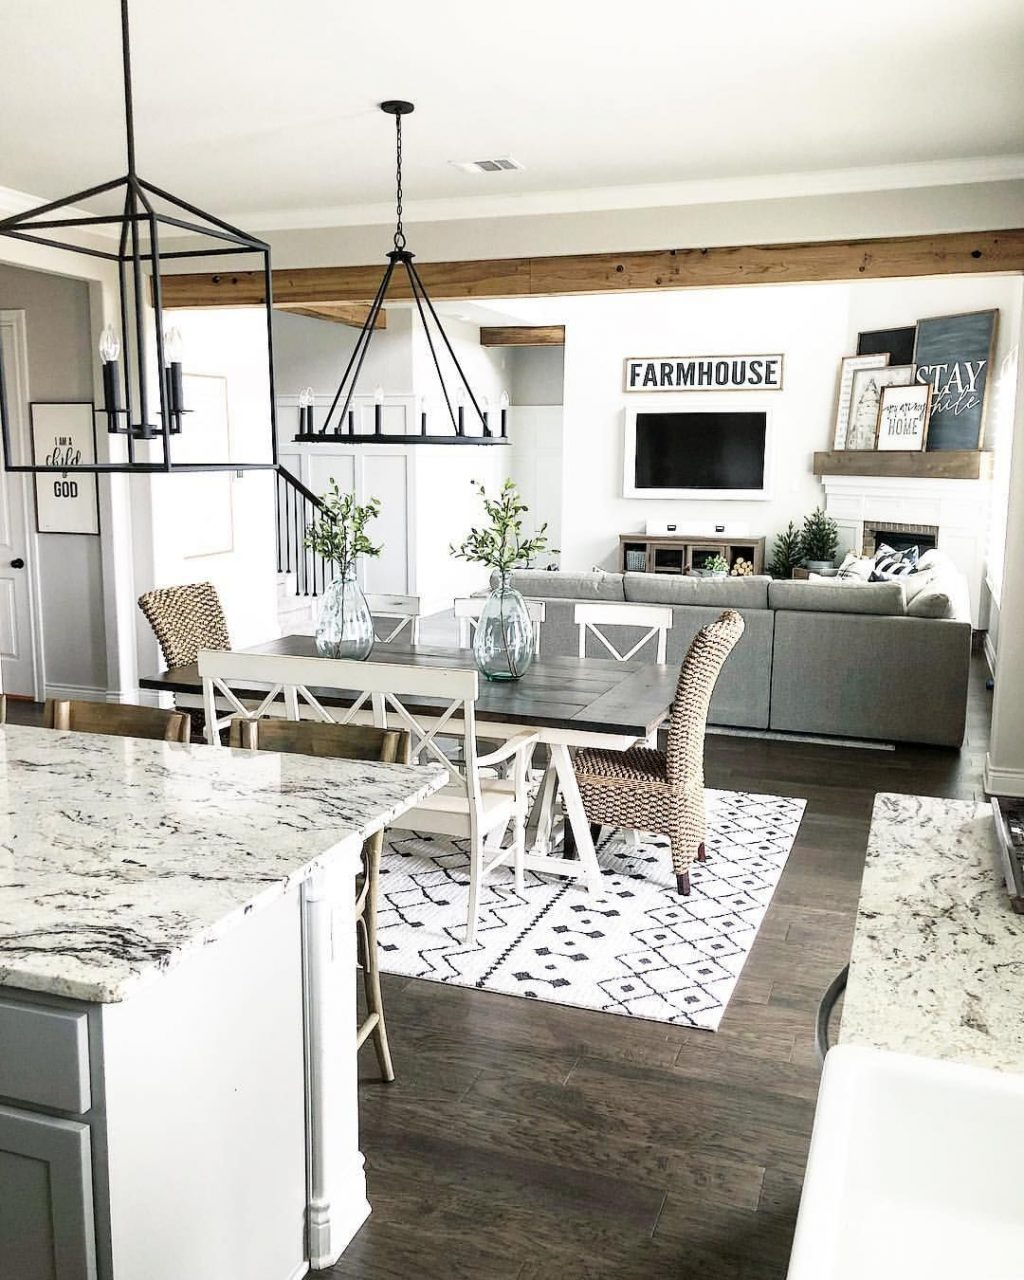 Farmhouse Style Open Layout With Kitchen Dining Room And Living